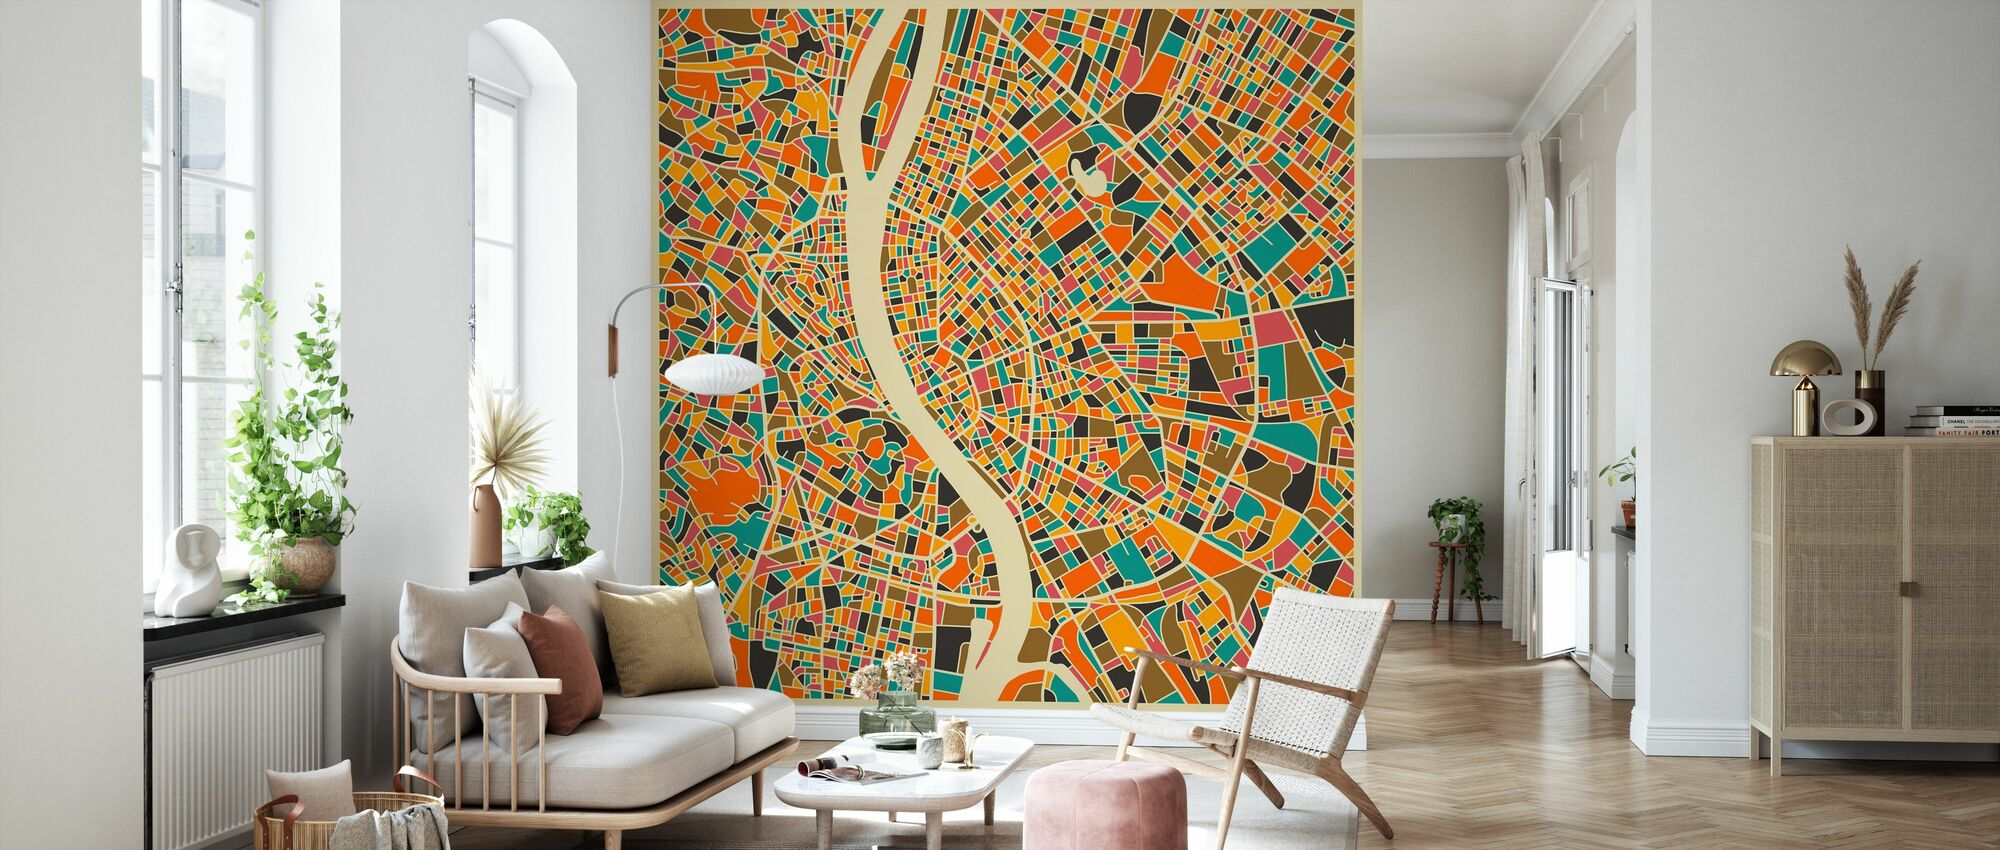 Multicolor Map - Budapest - Wallpaper - Living Room